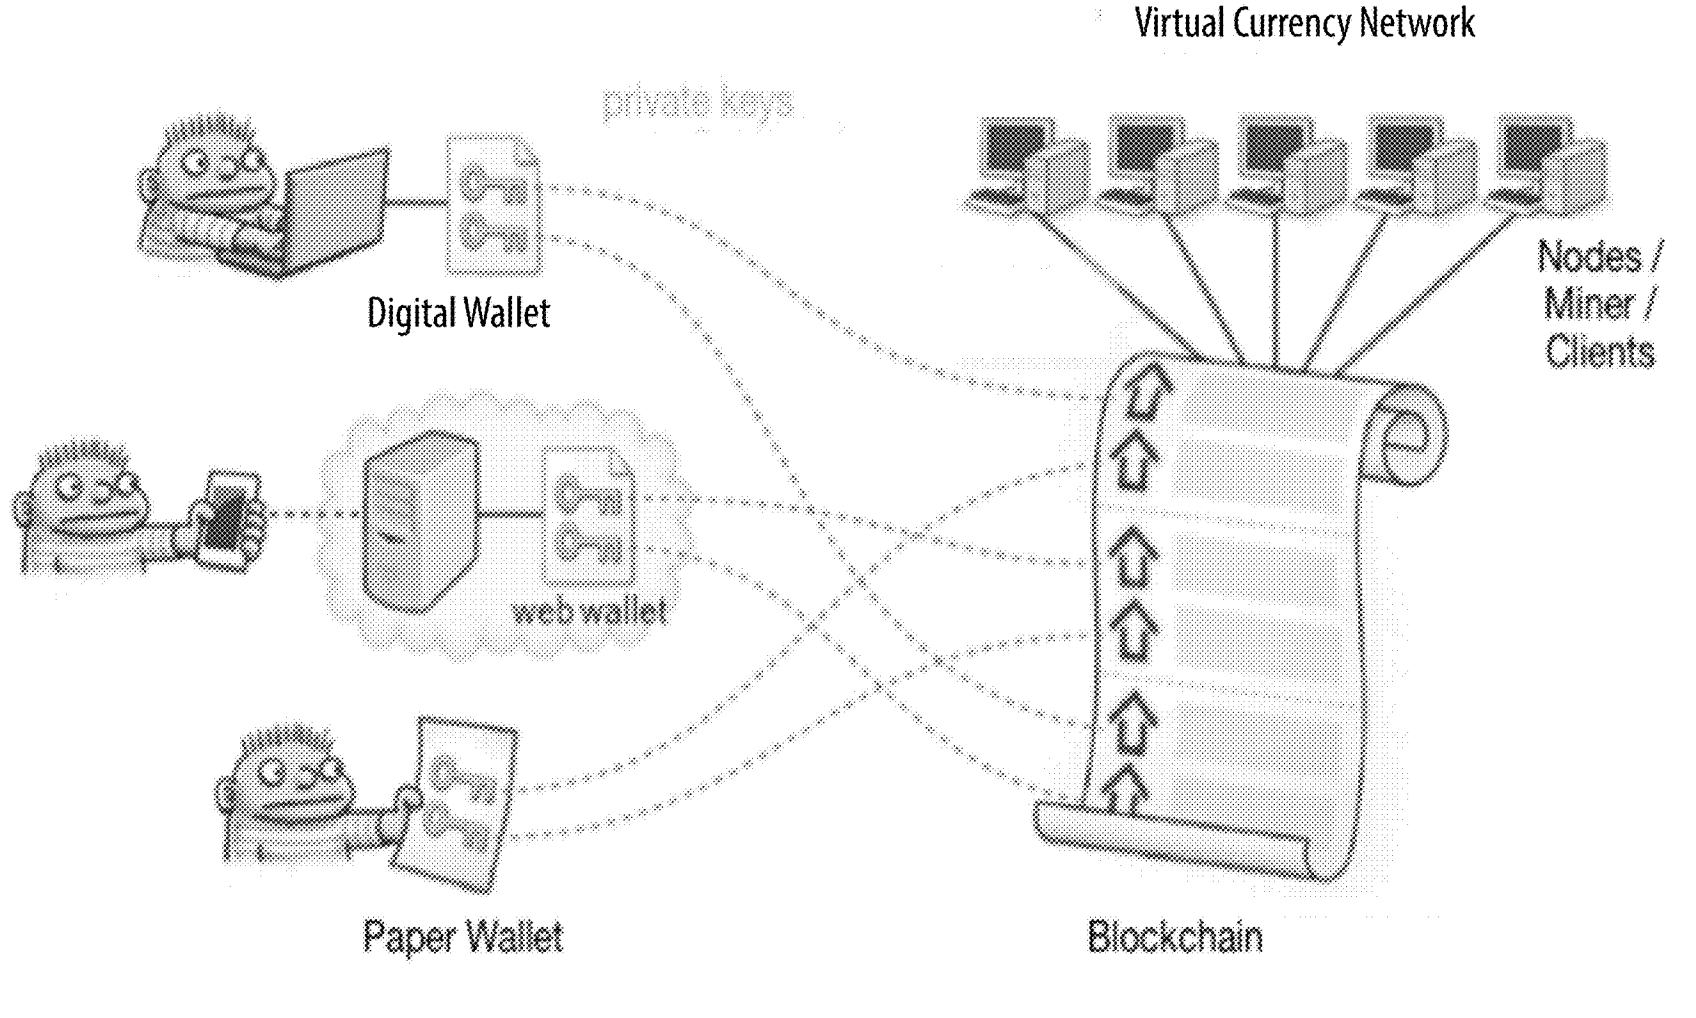 Image of digital, web, and paper wallets